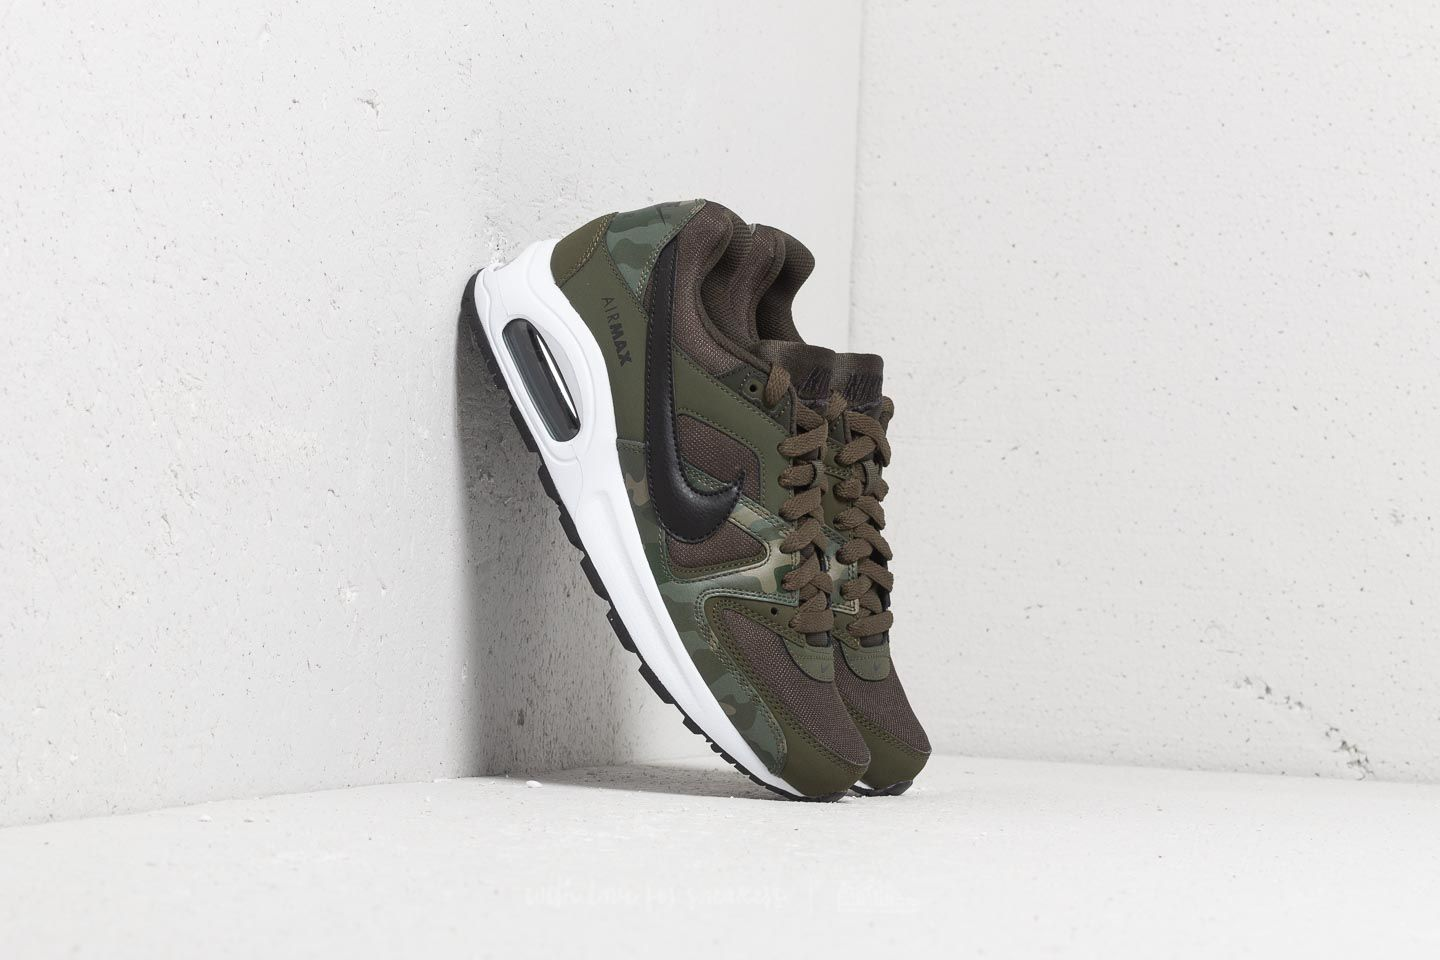 Nike Air Max Command Flex BG Sequoia Black White | Footshop